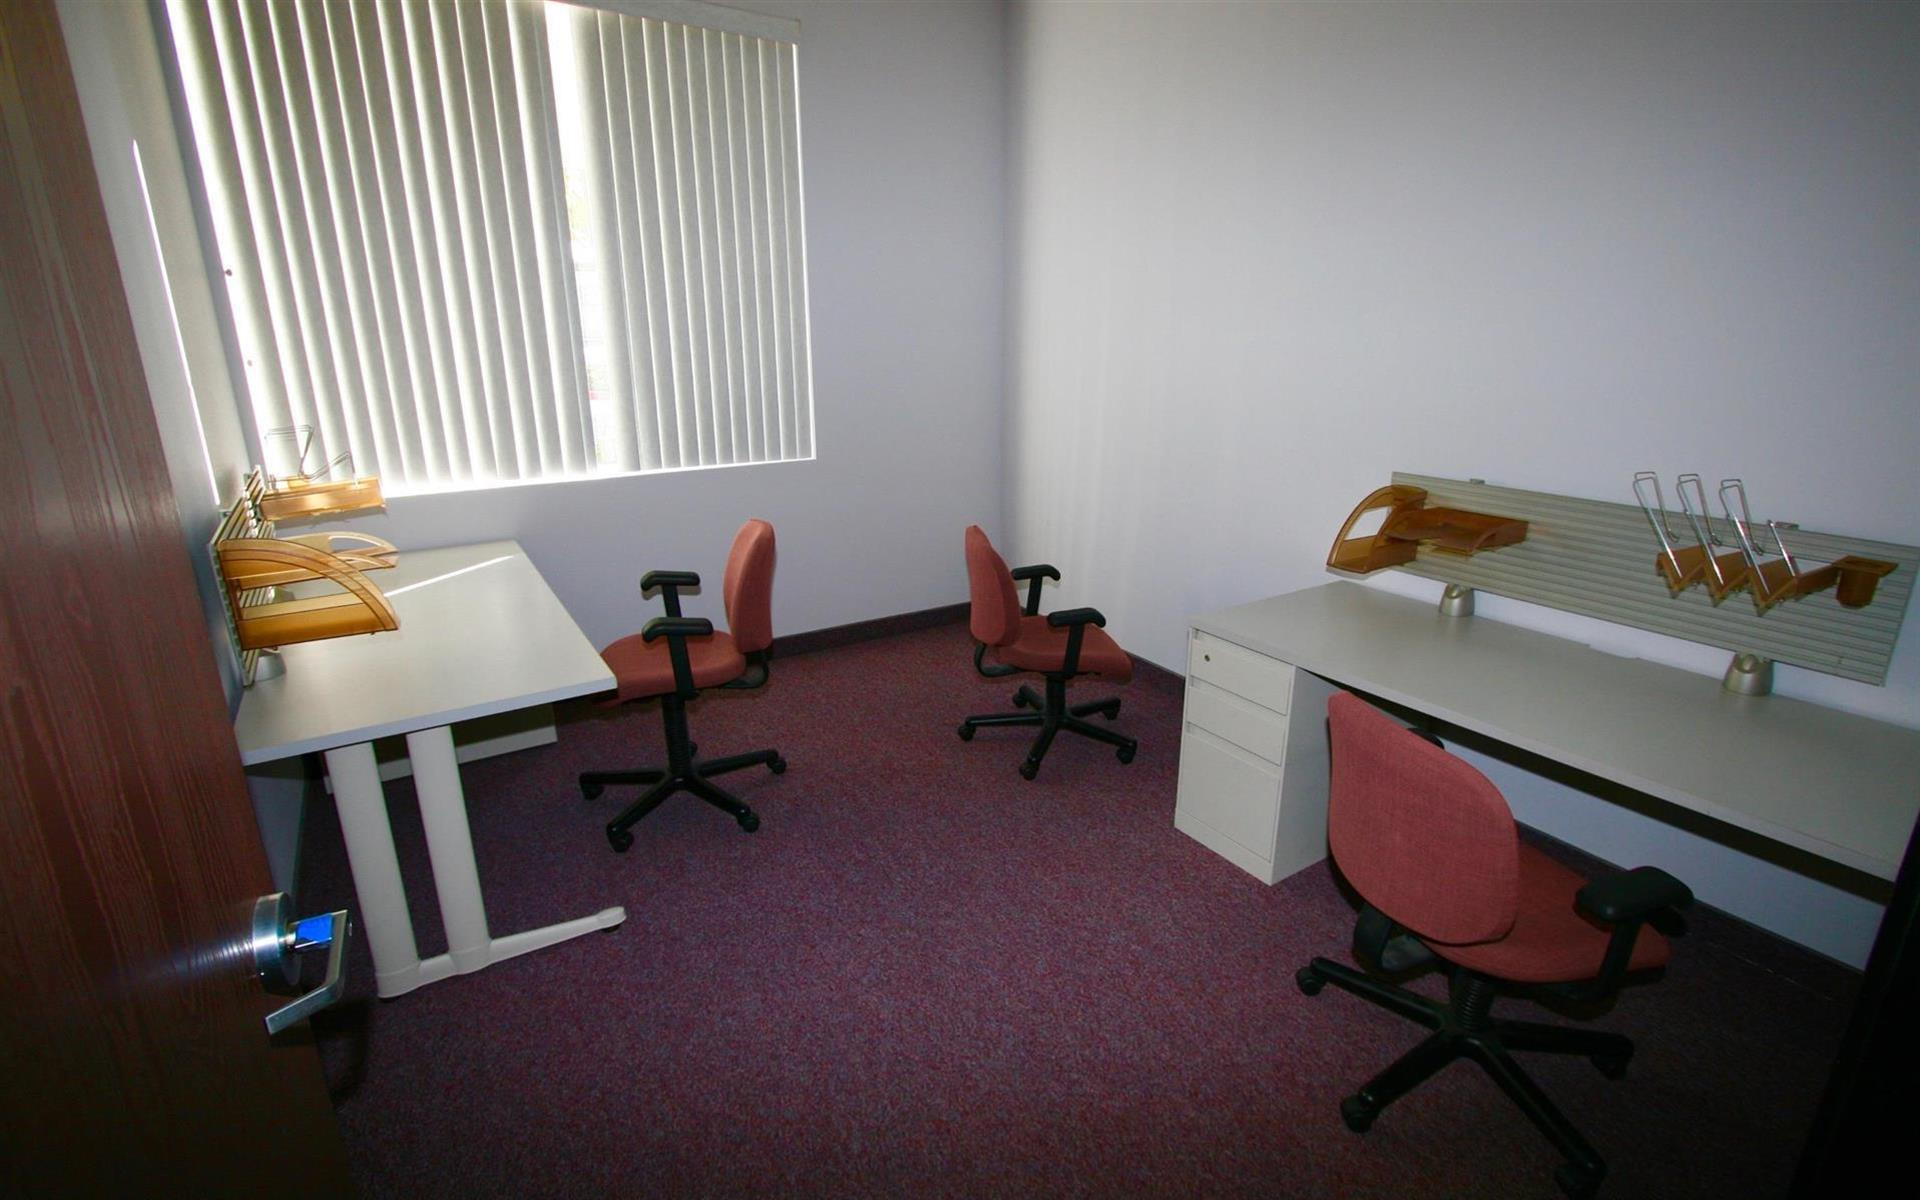 InnoGrove - Dedicated Desk in a Shared Office